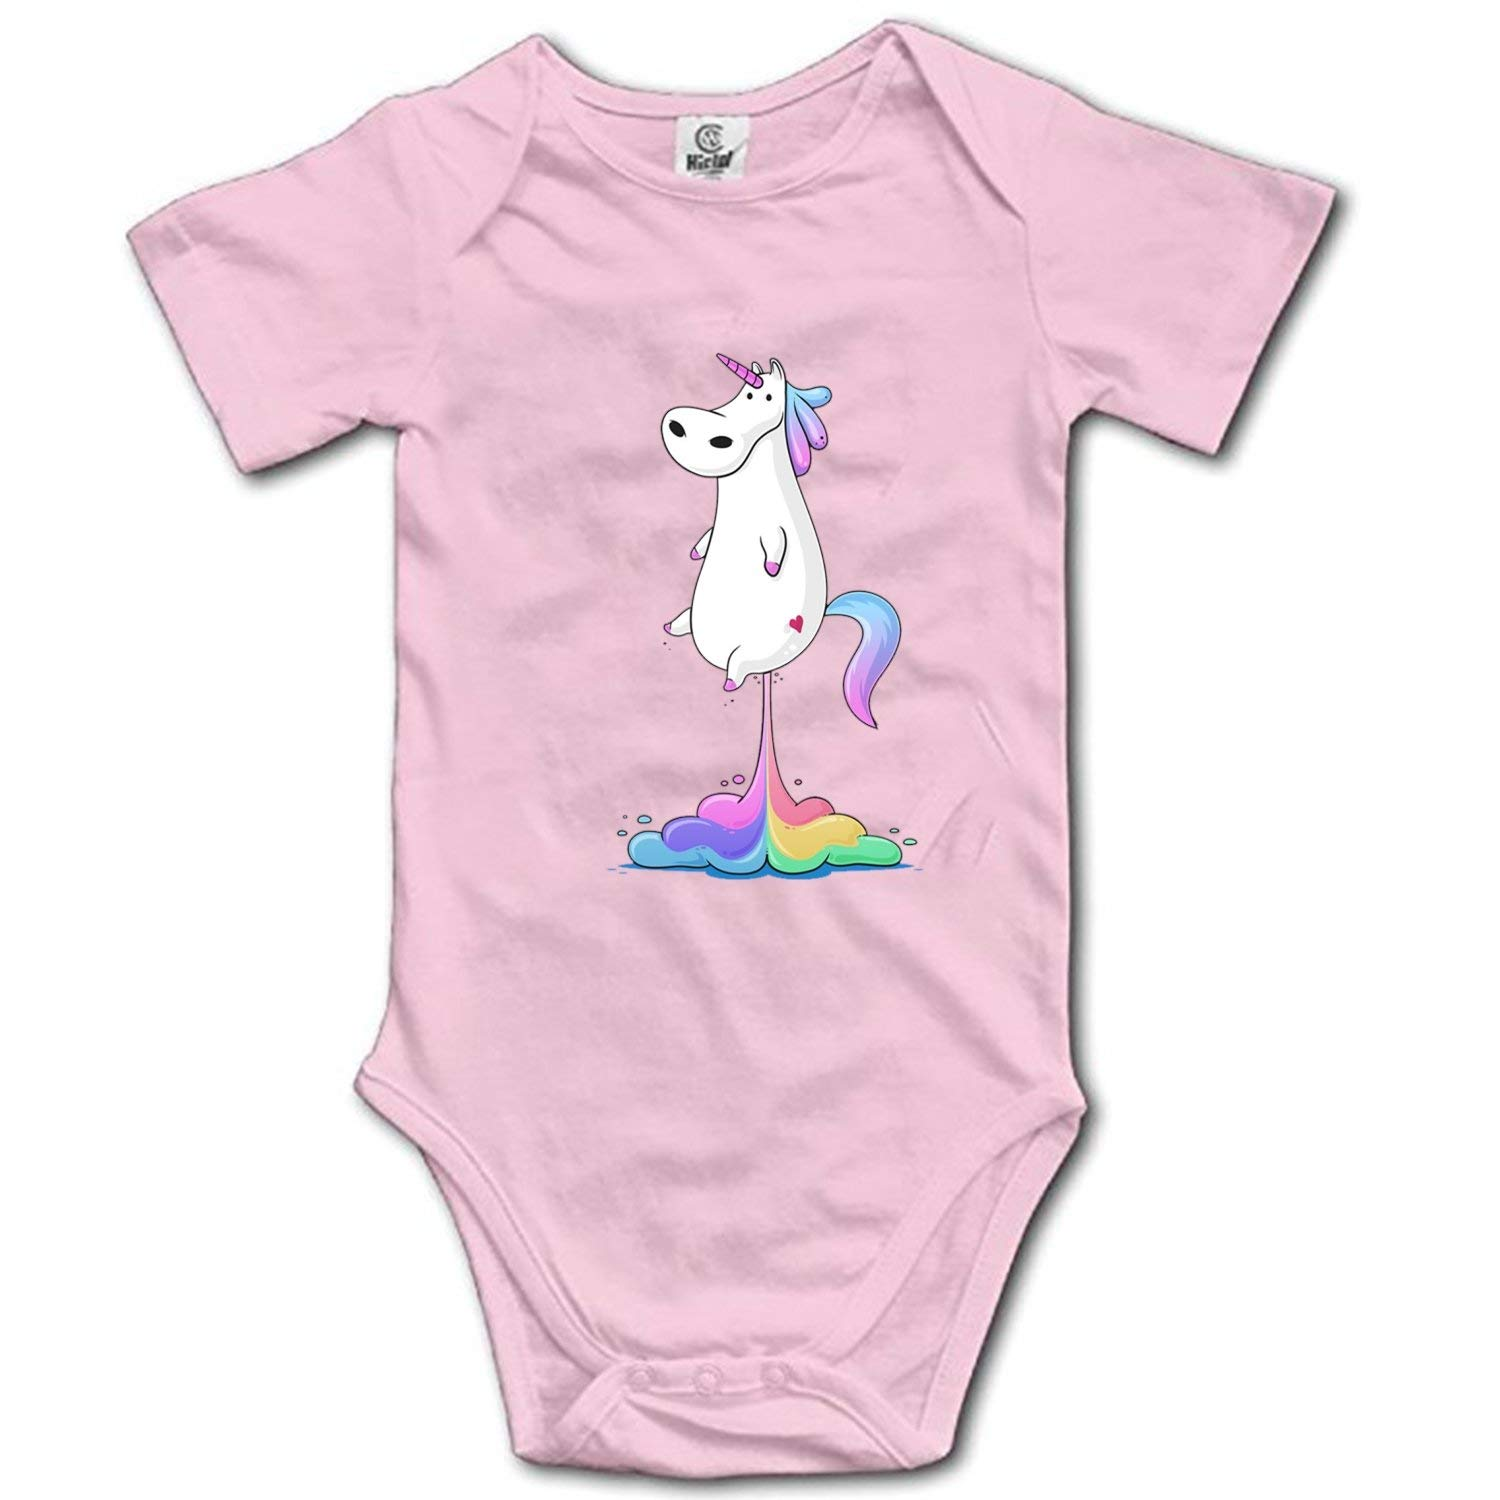 Infant Baby Girls Bodysuit Short-Sleeve Onesie The Outer Space Print Outfit Spring Pajamas